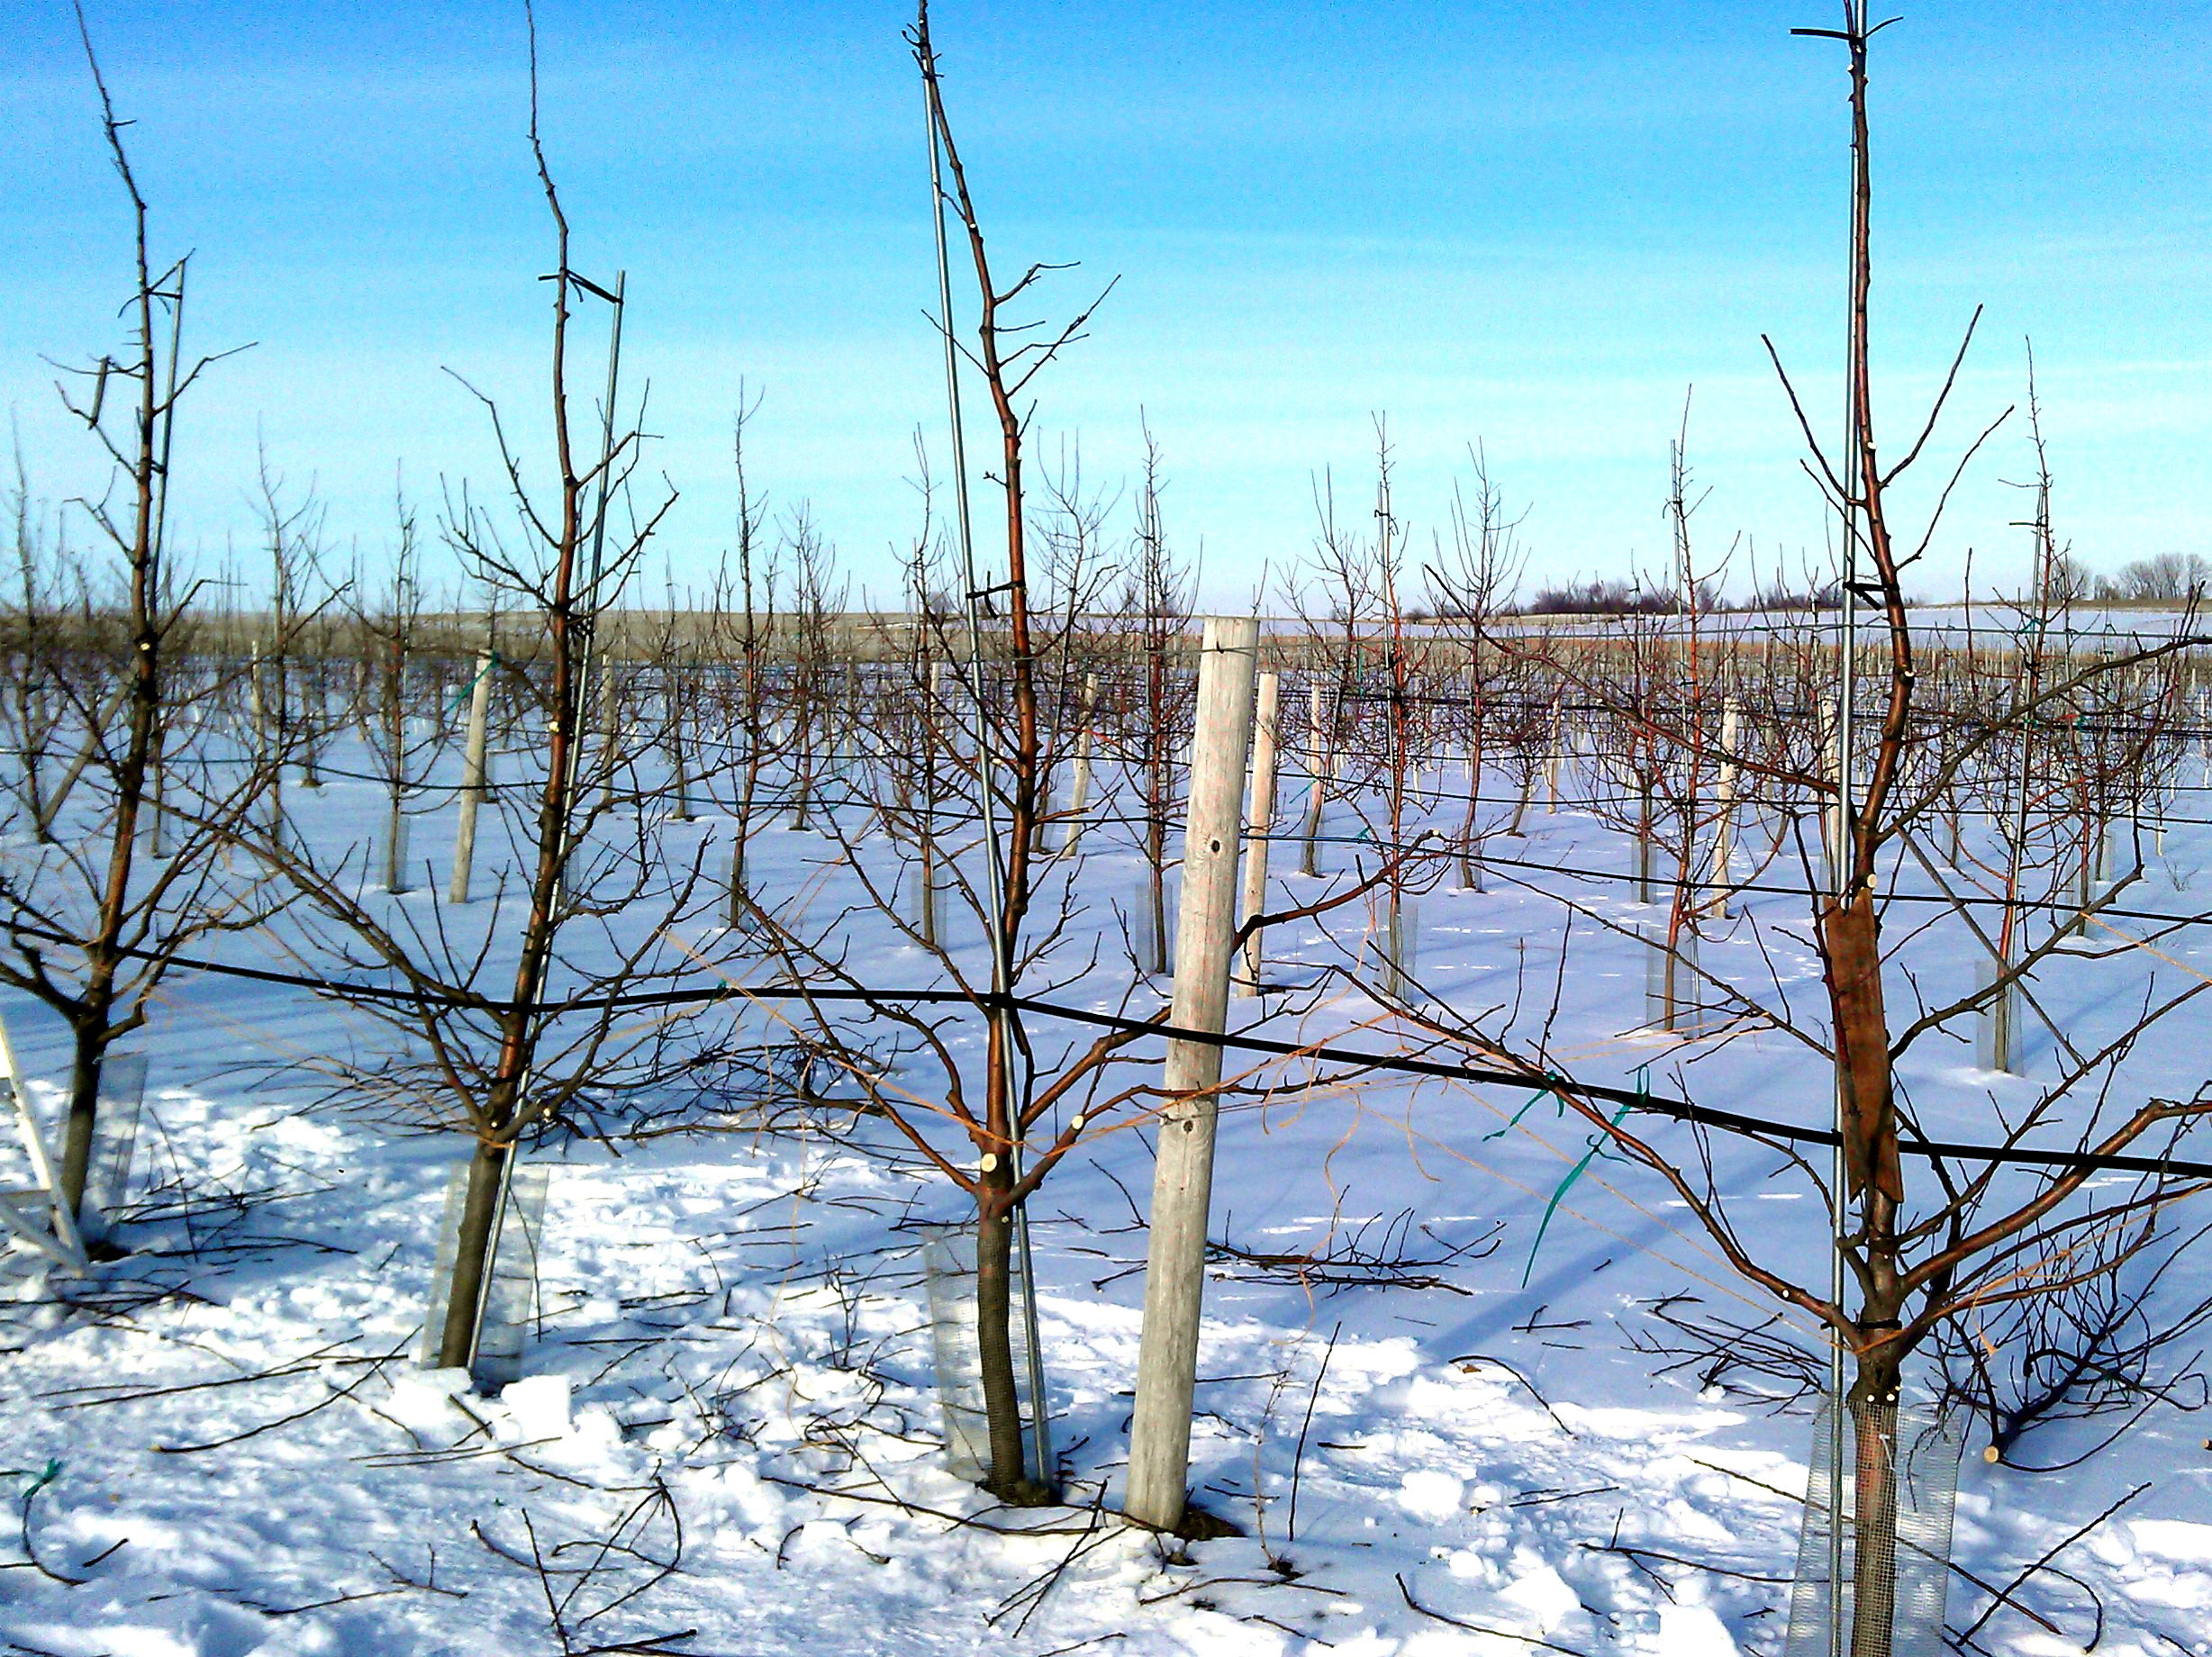 Orchard row after winter pruning